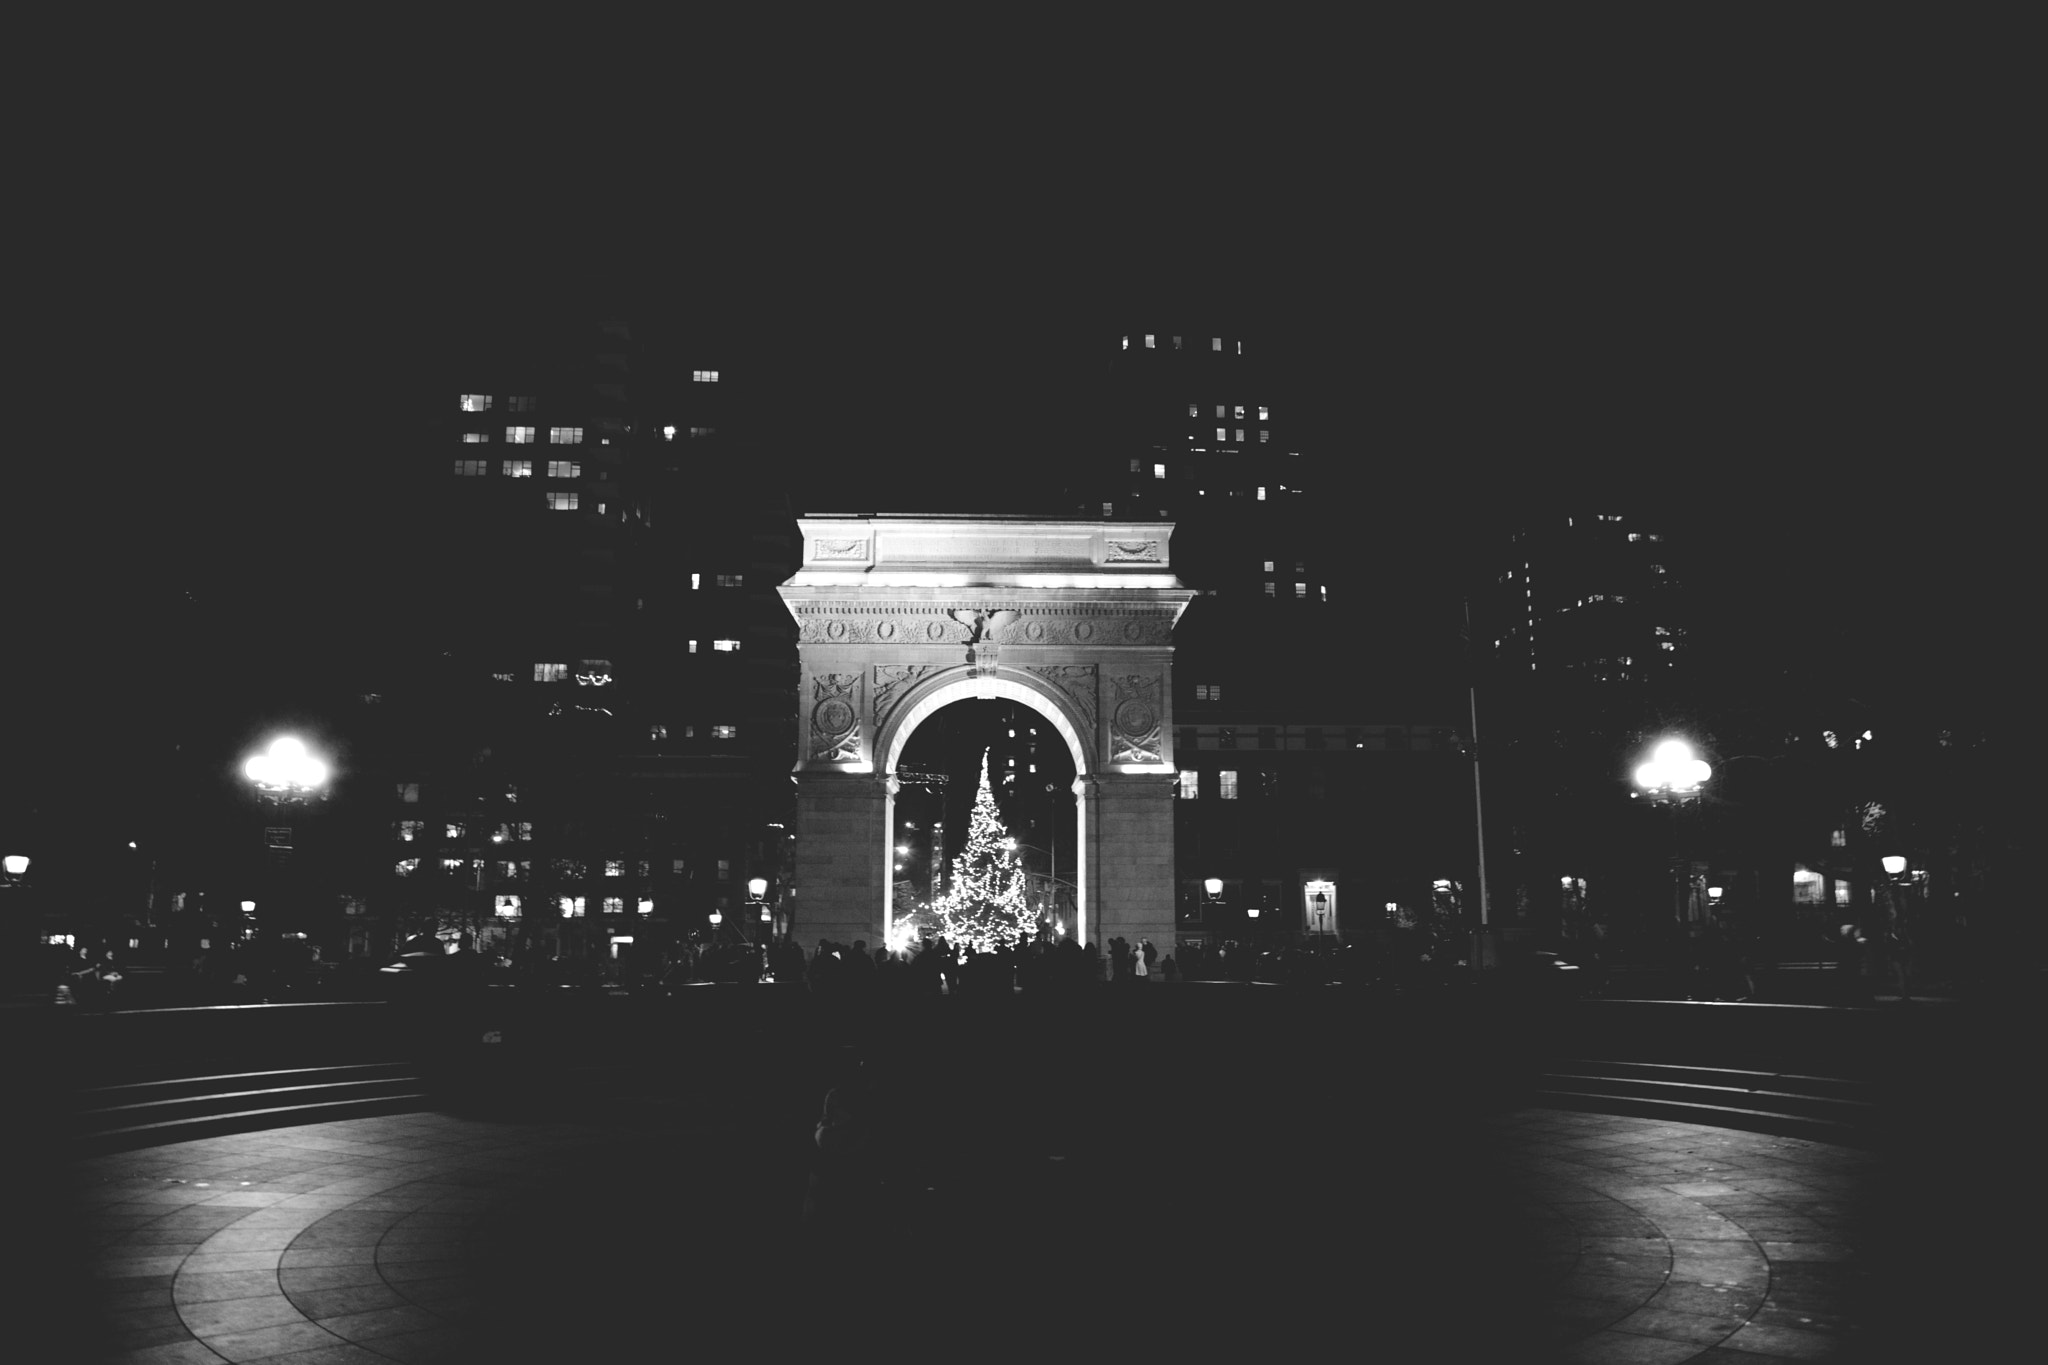 Photograph Washington Square During the Holidays by Apostolos Stefanopoulos on 500px